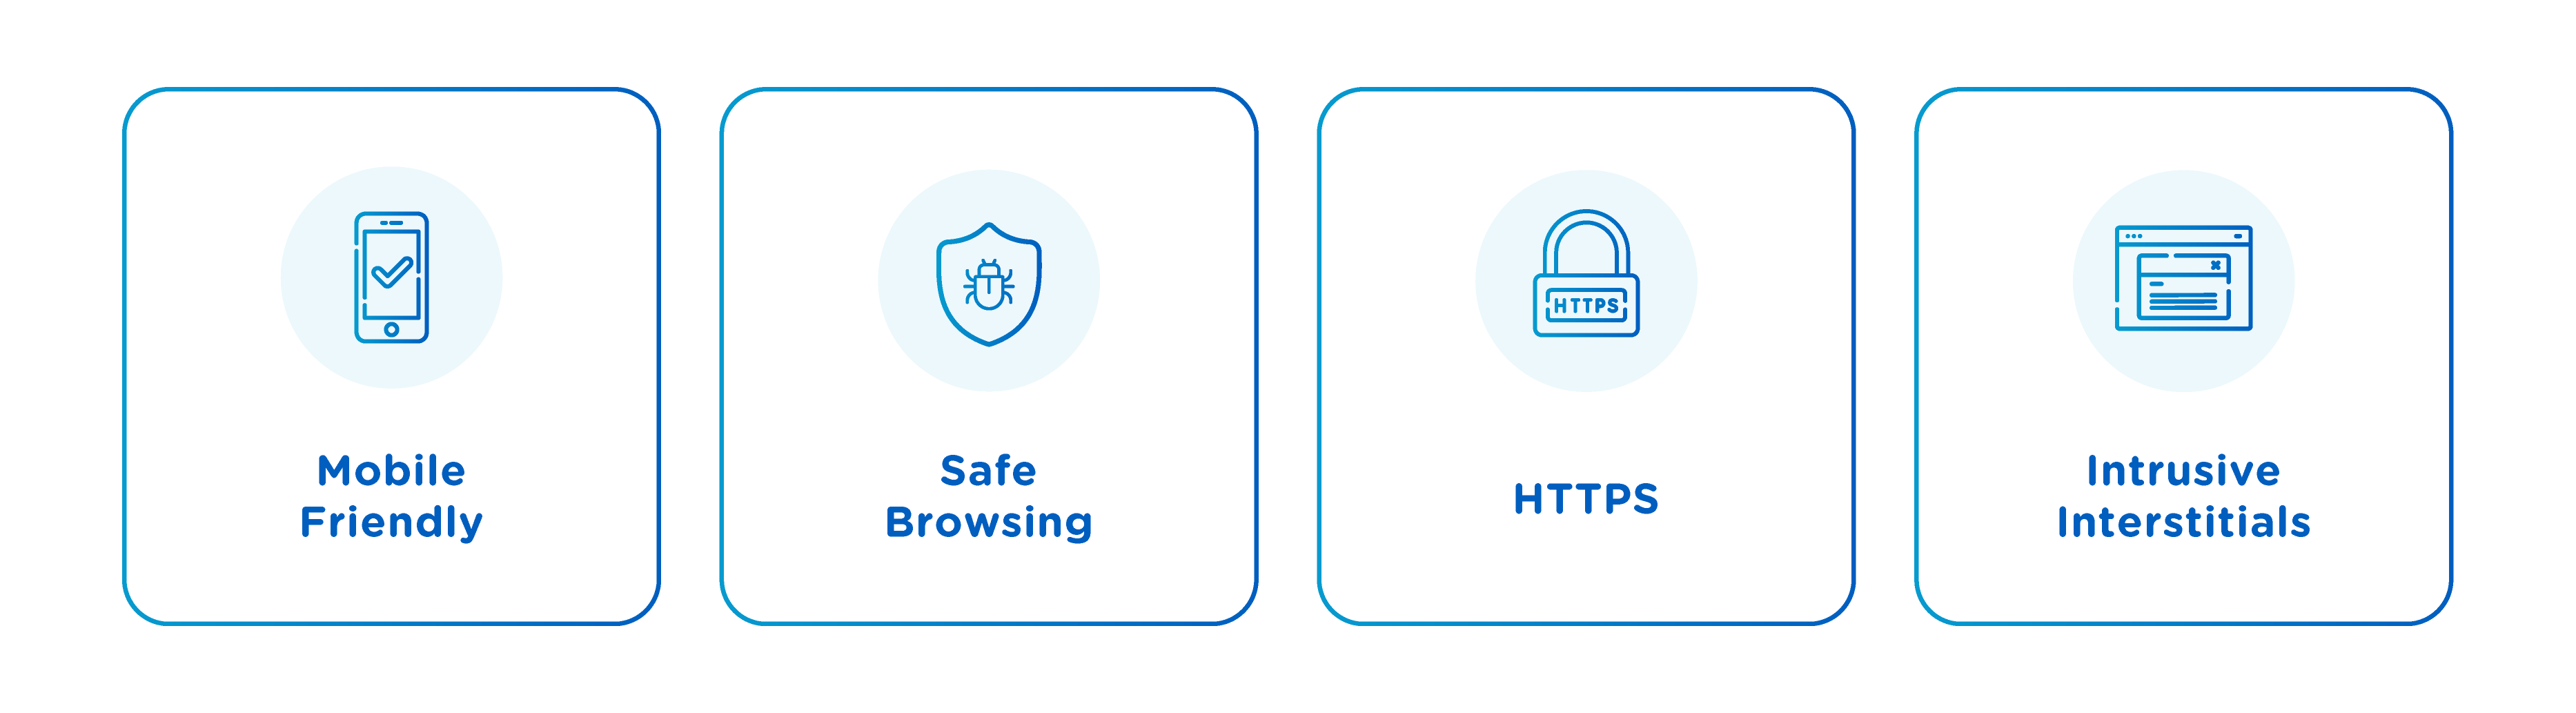 An infographic that illustrates the four additional factors in Core Web Vitals: mobile friendliness, safe browsing, HTTPS, and intrusive interstitials.